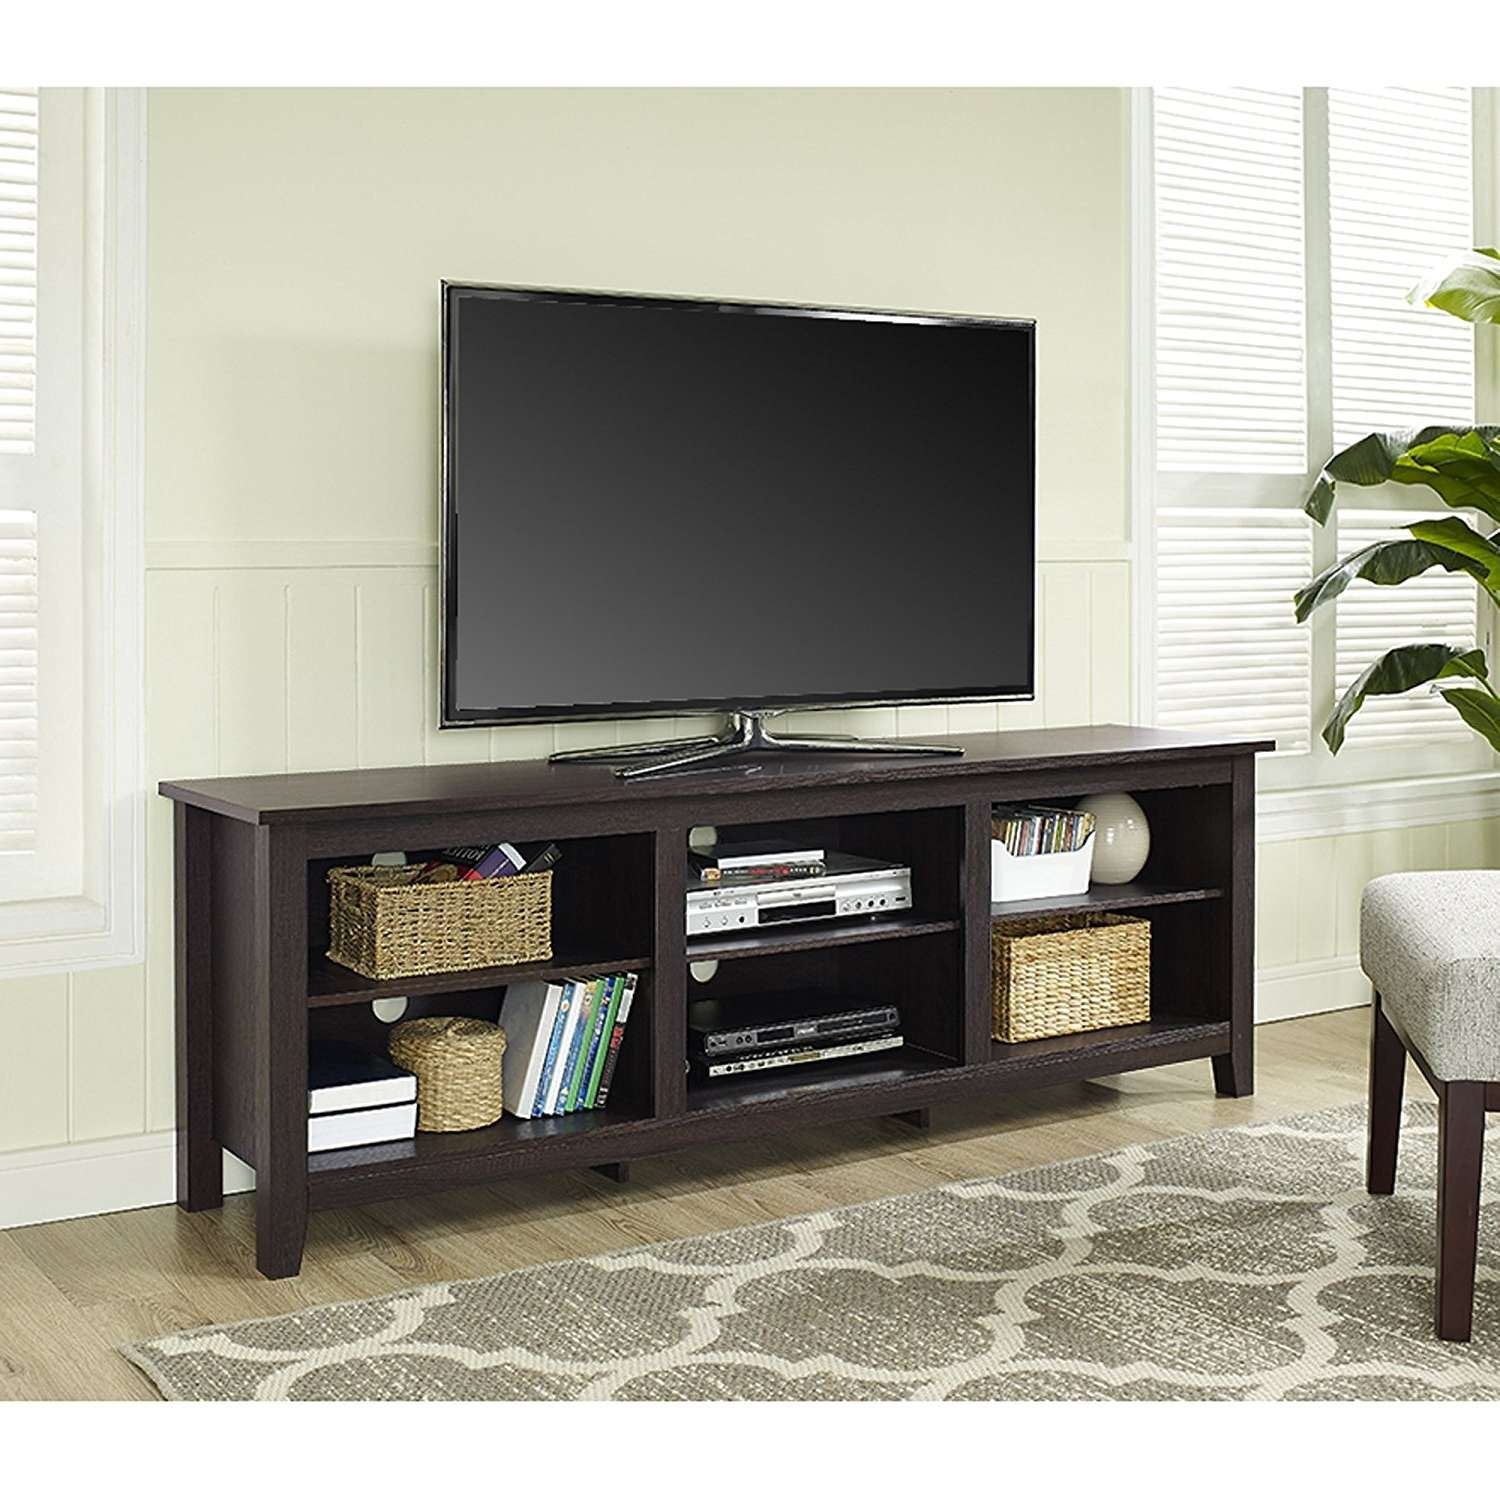 Console Tables : Extra Long Tv Stand Awe Images About Stylish Within Extra Long Tv Stands (View 12 of 20)